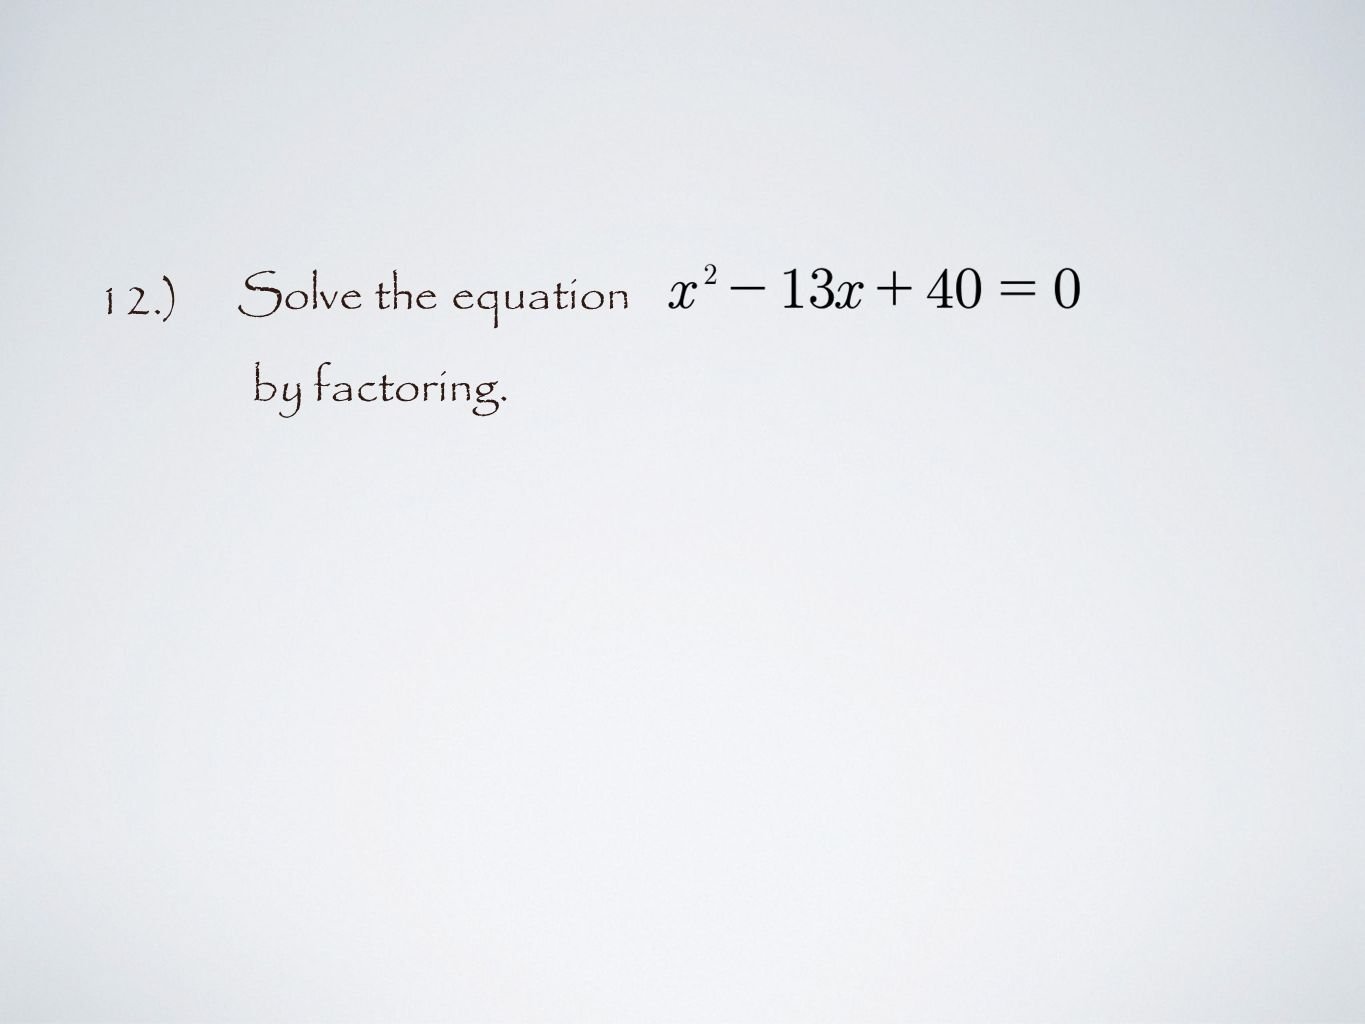 12.) Solve the equation by factoring.